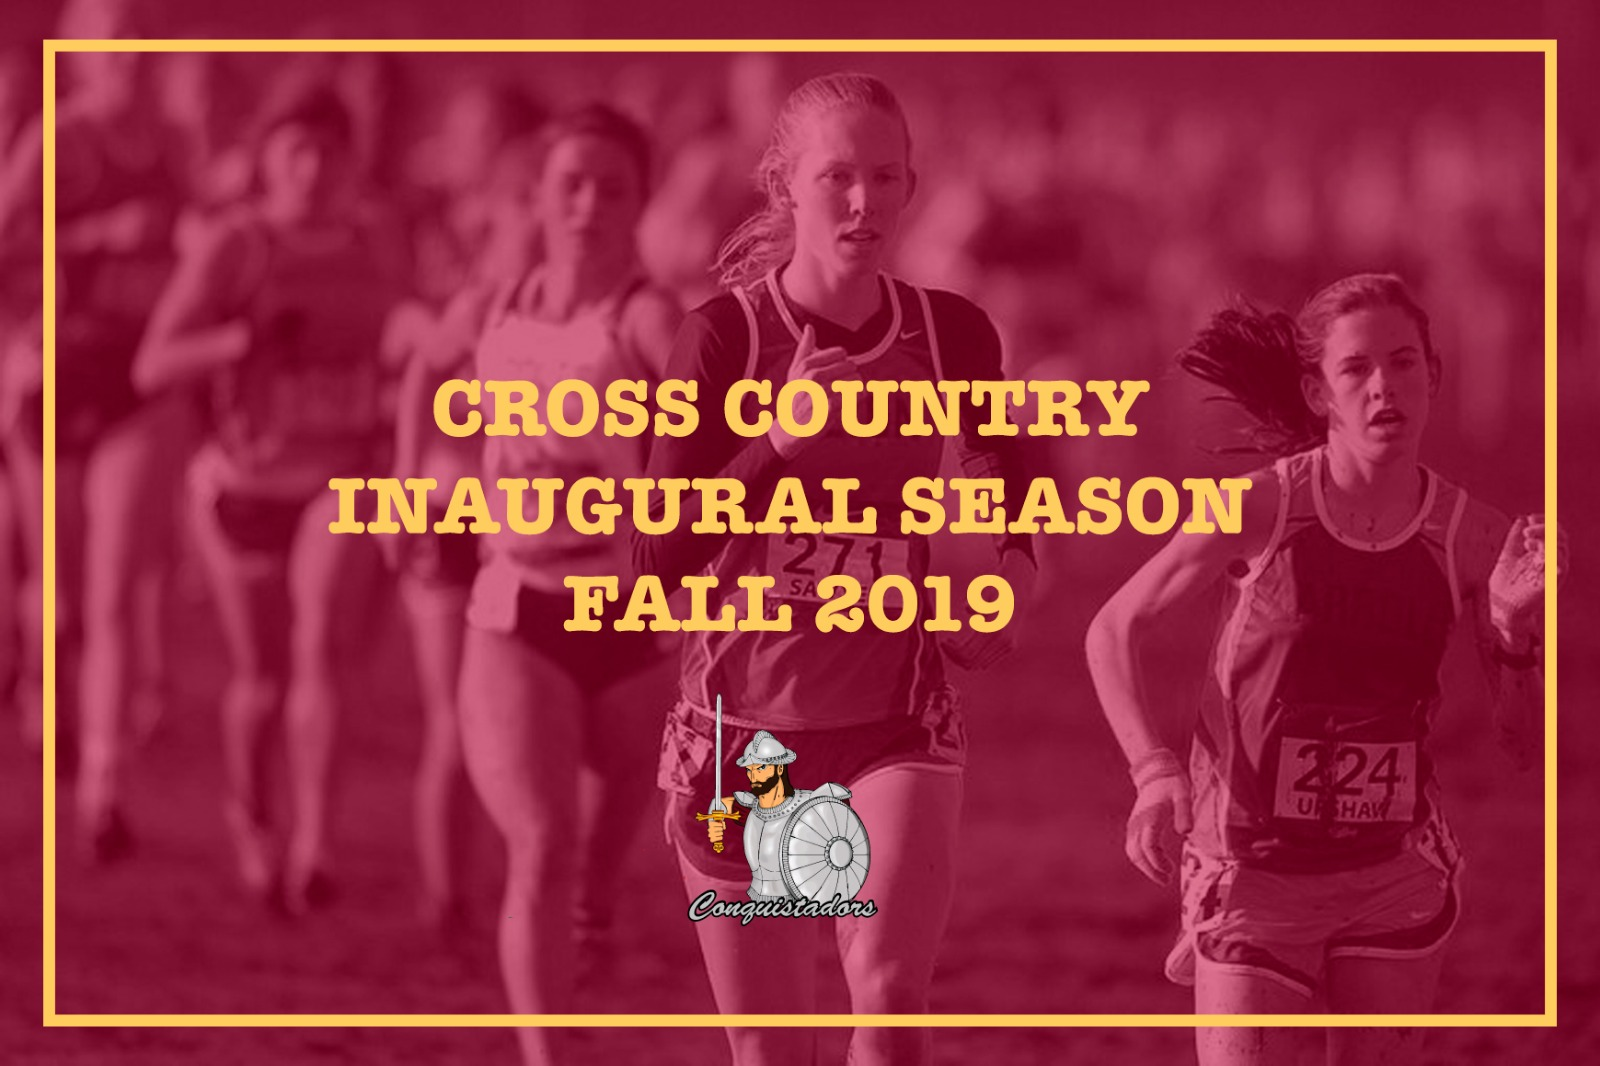 Women's Cross Country Picture saying Cross Country Inaugural